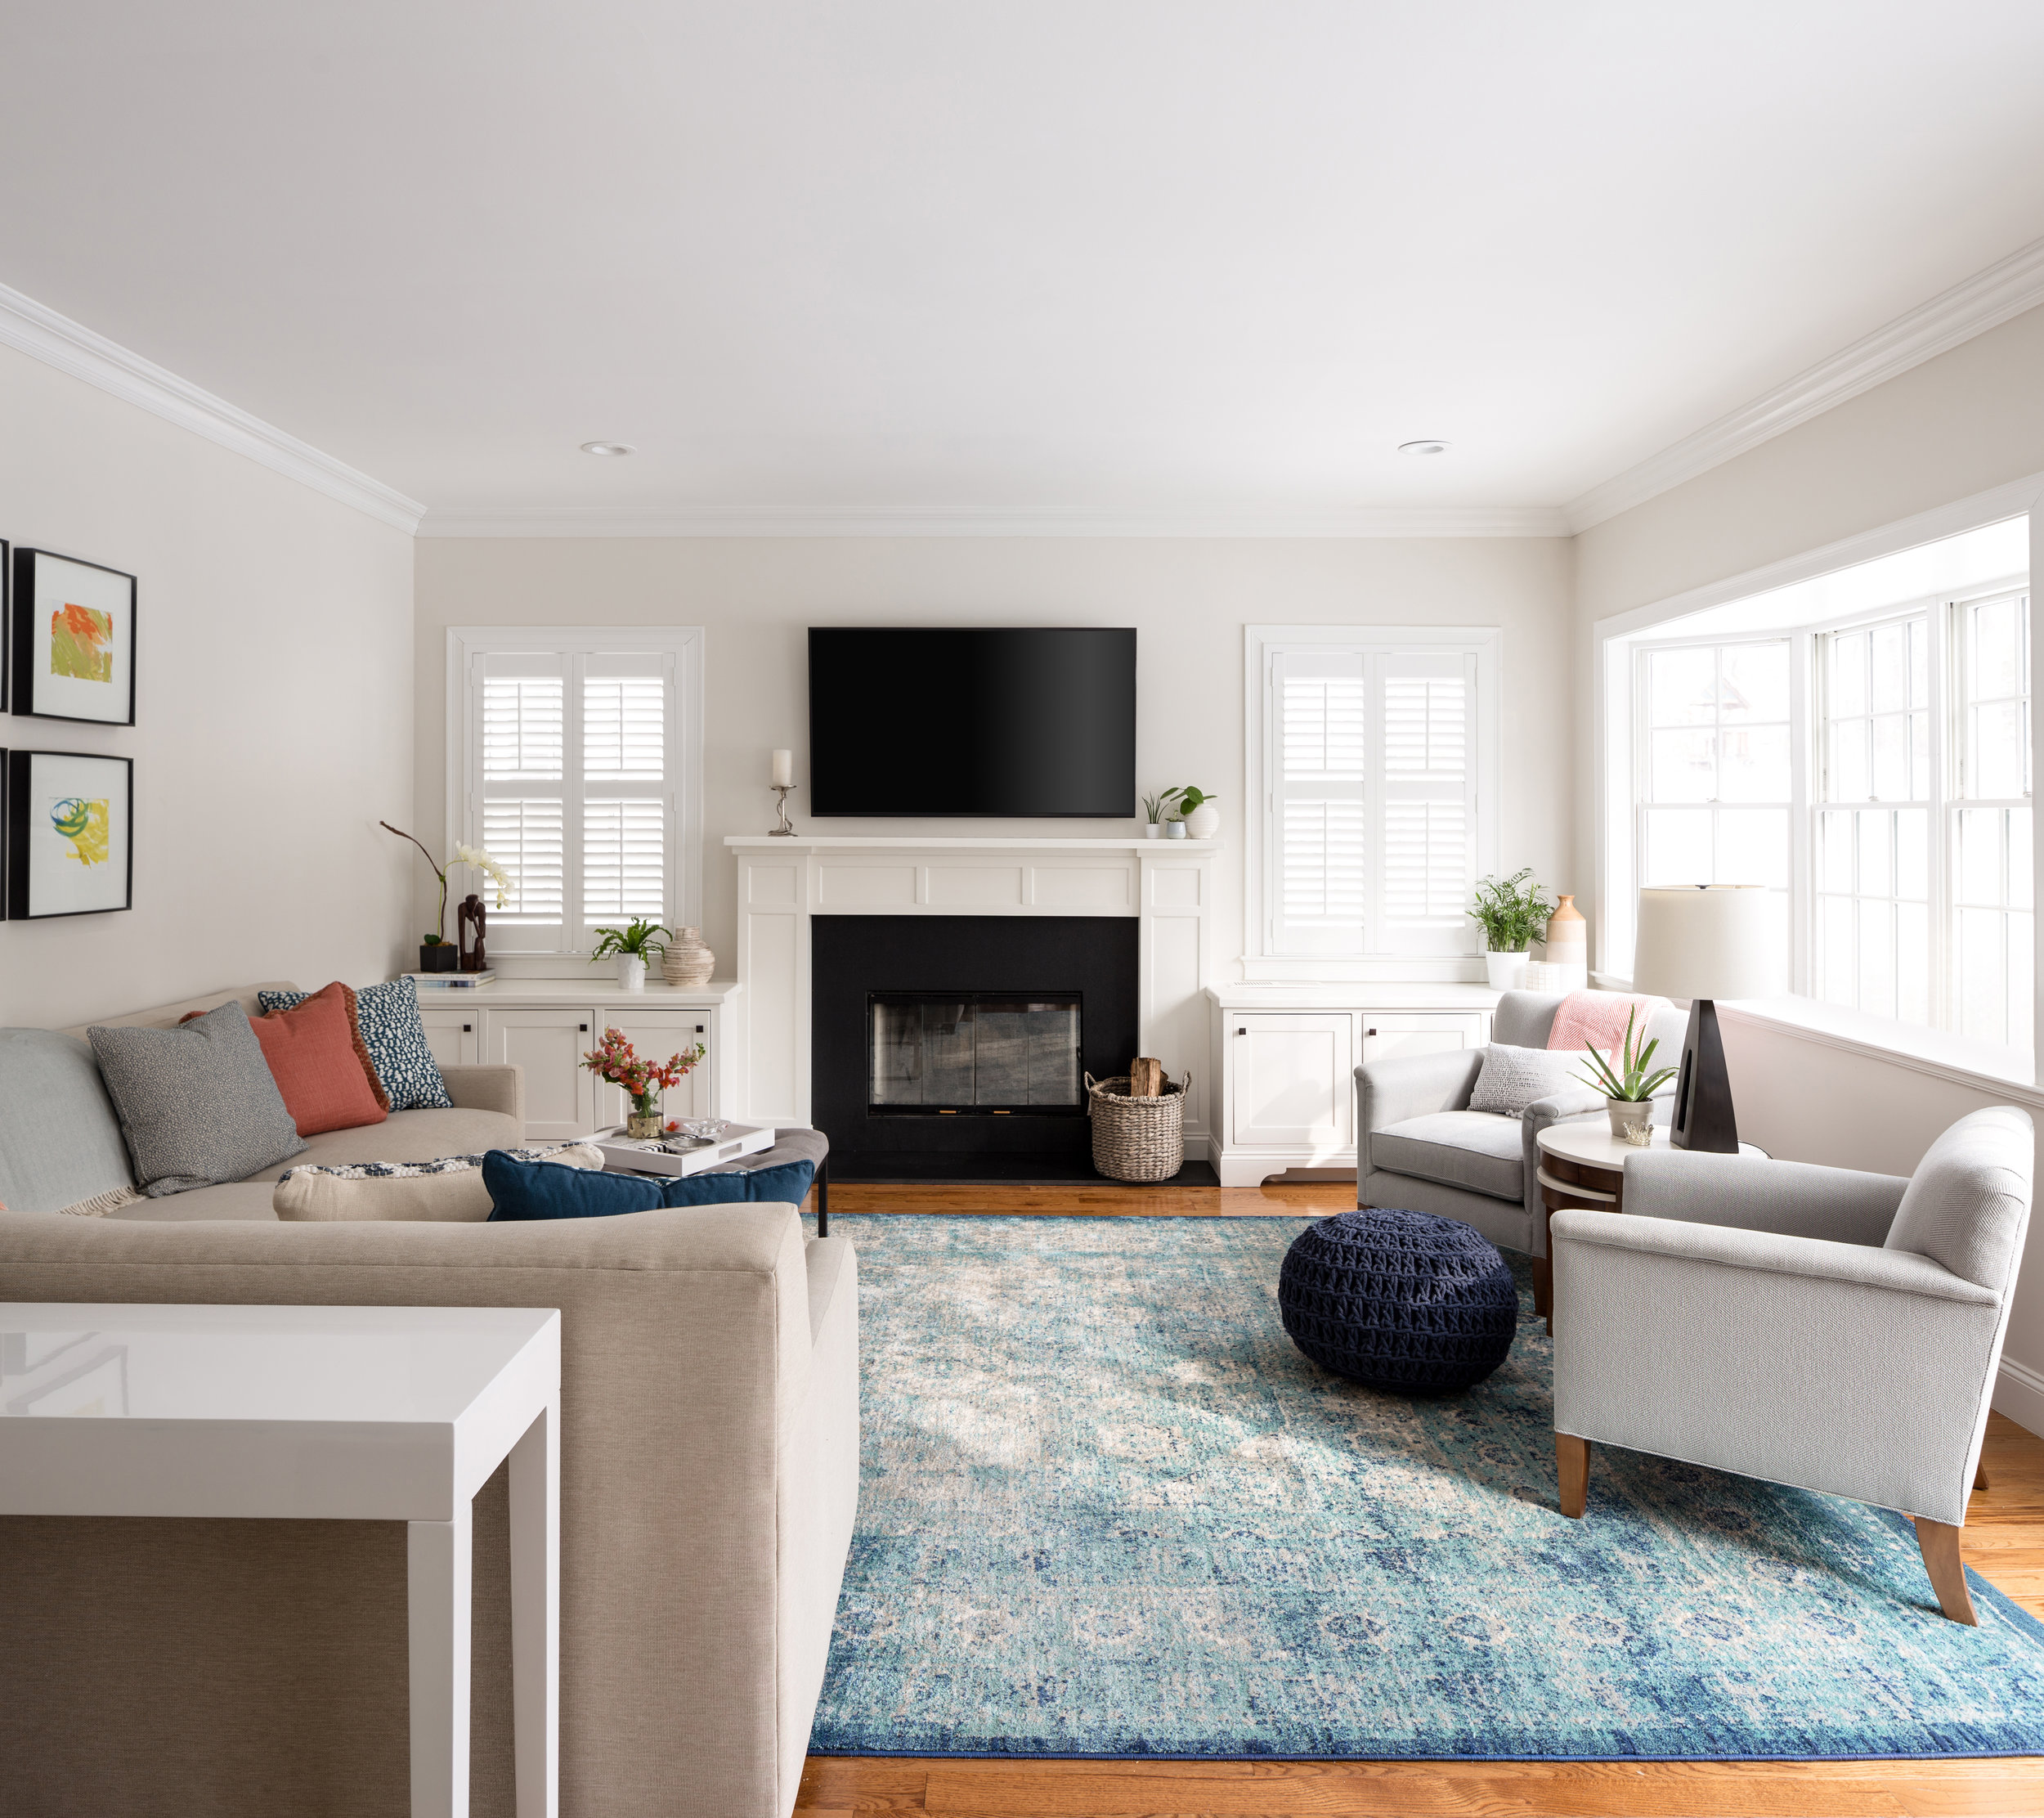 Interiors Photography - Living Room